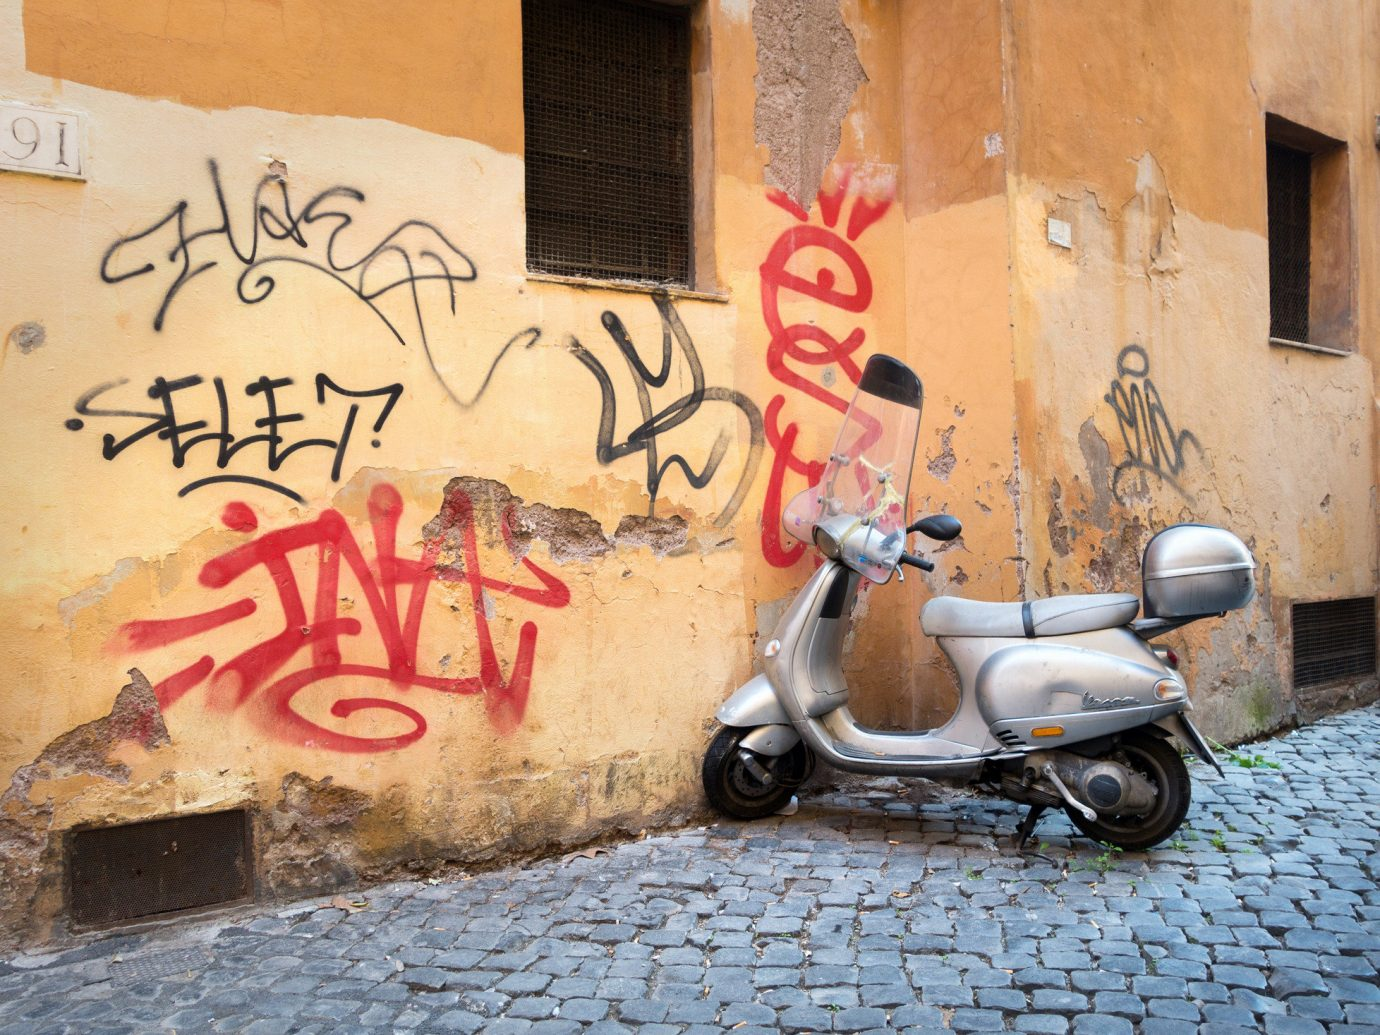 Travel Tips building outdoor graffiti art wall street art parked abstract street vehicle mural road painted scooter